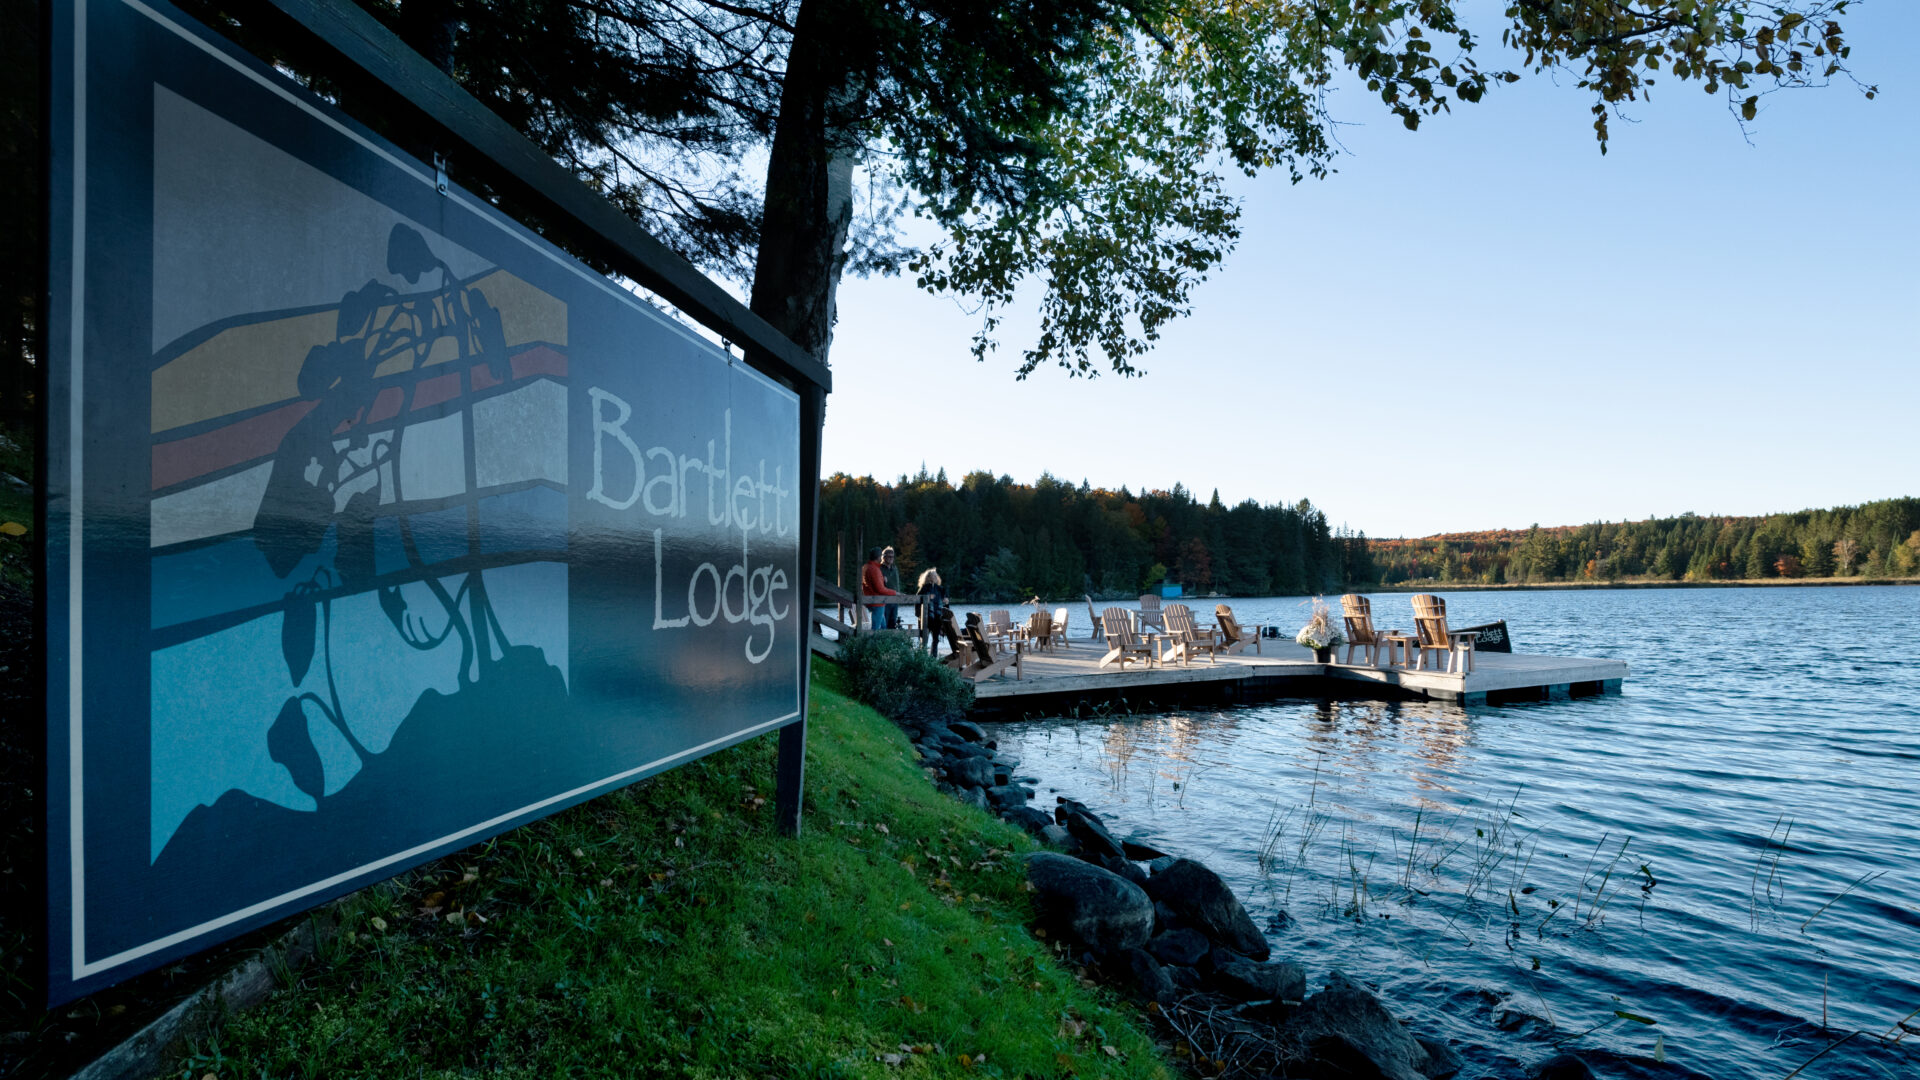 Bartlett Lodge sign on a grassy hill beside Cache Lake and dock with wooden Muskoka chairs